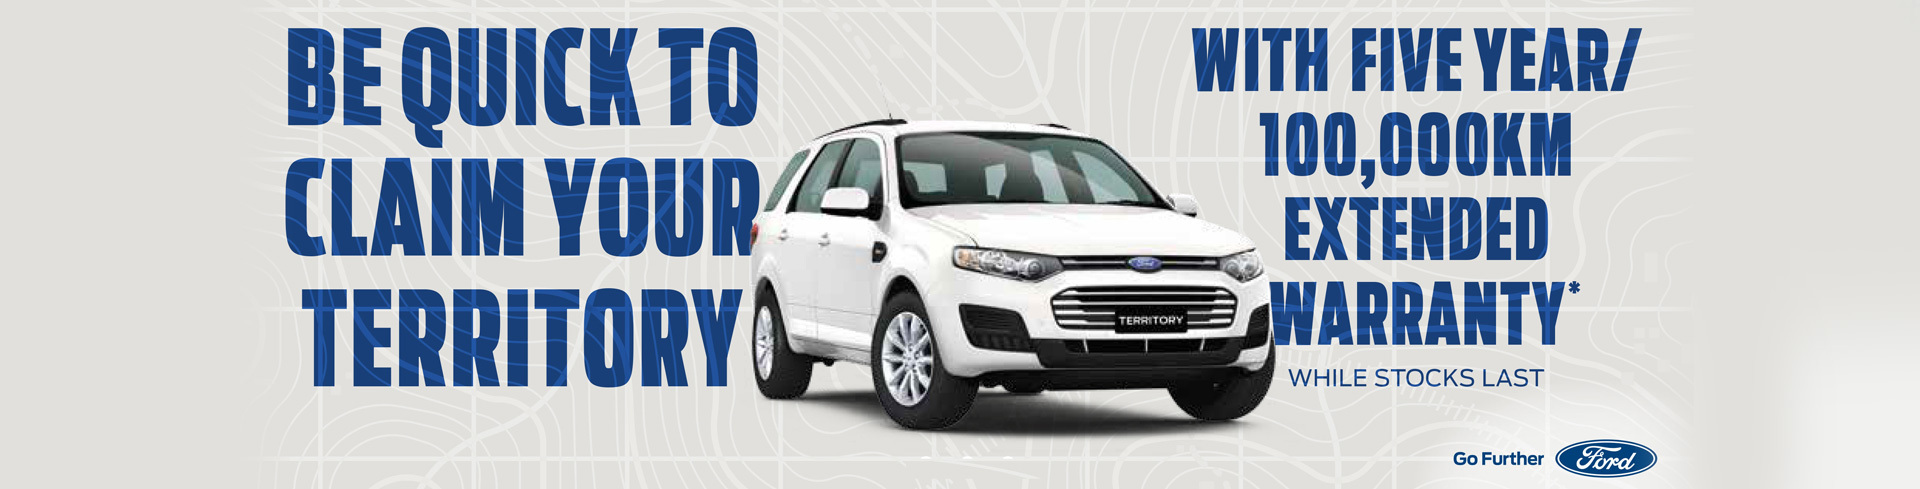 Ford - National Offer -With Five Year/100,000km Extended Warranty